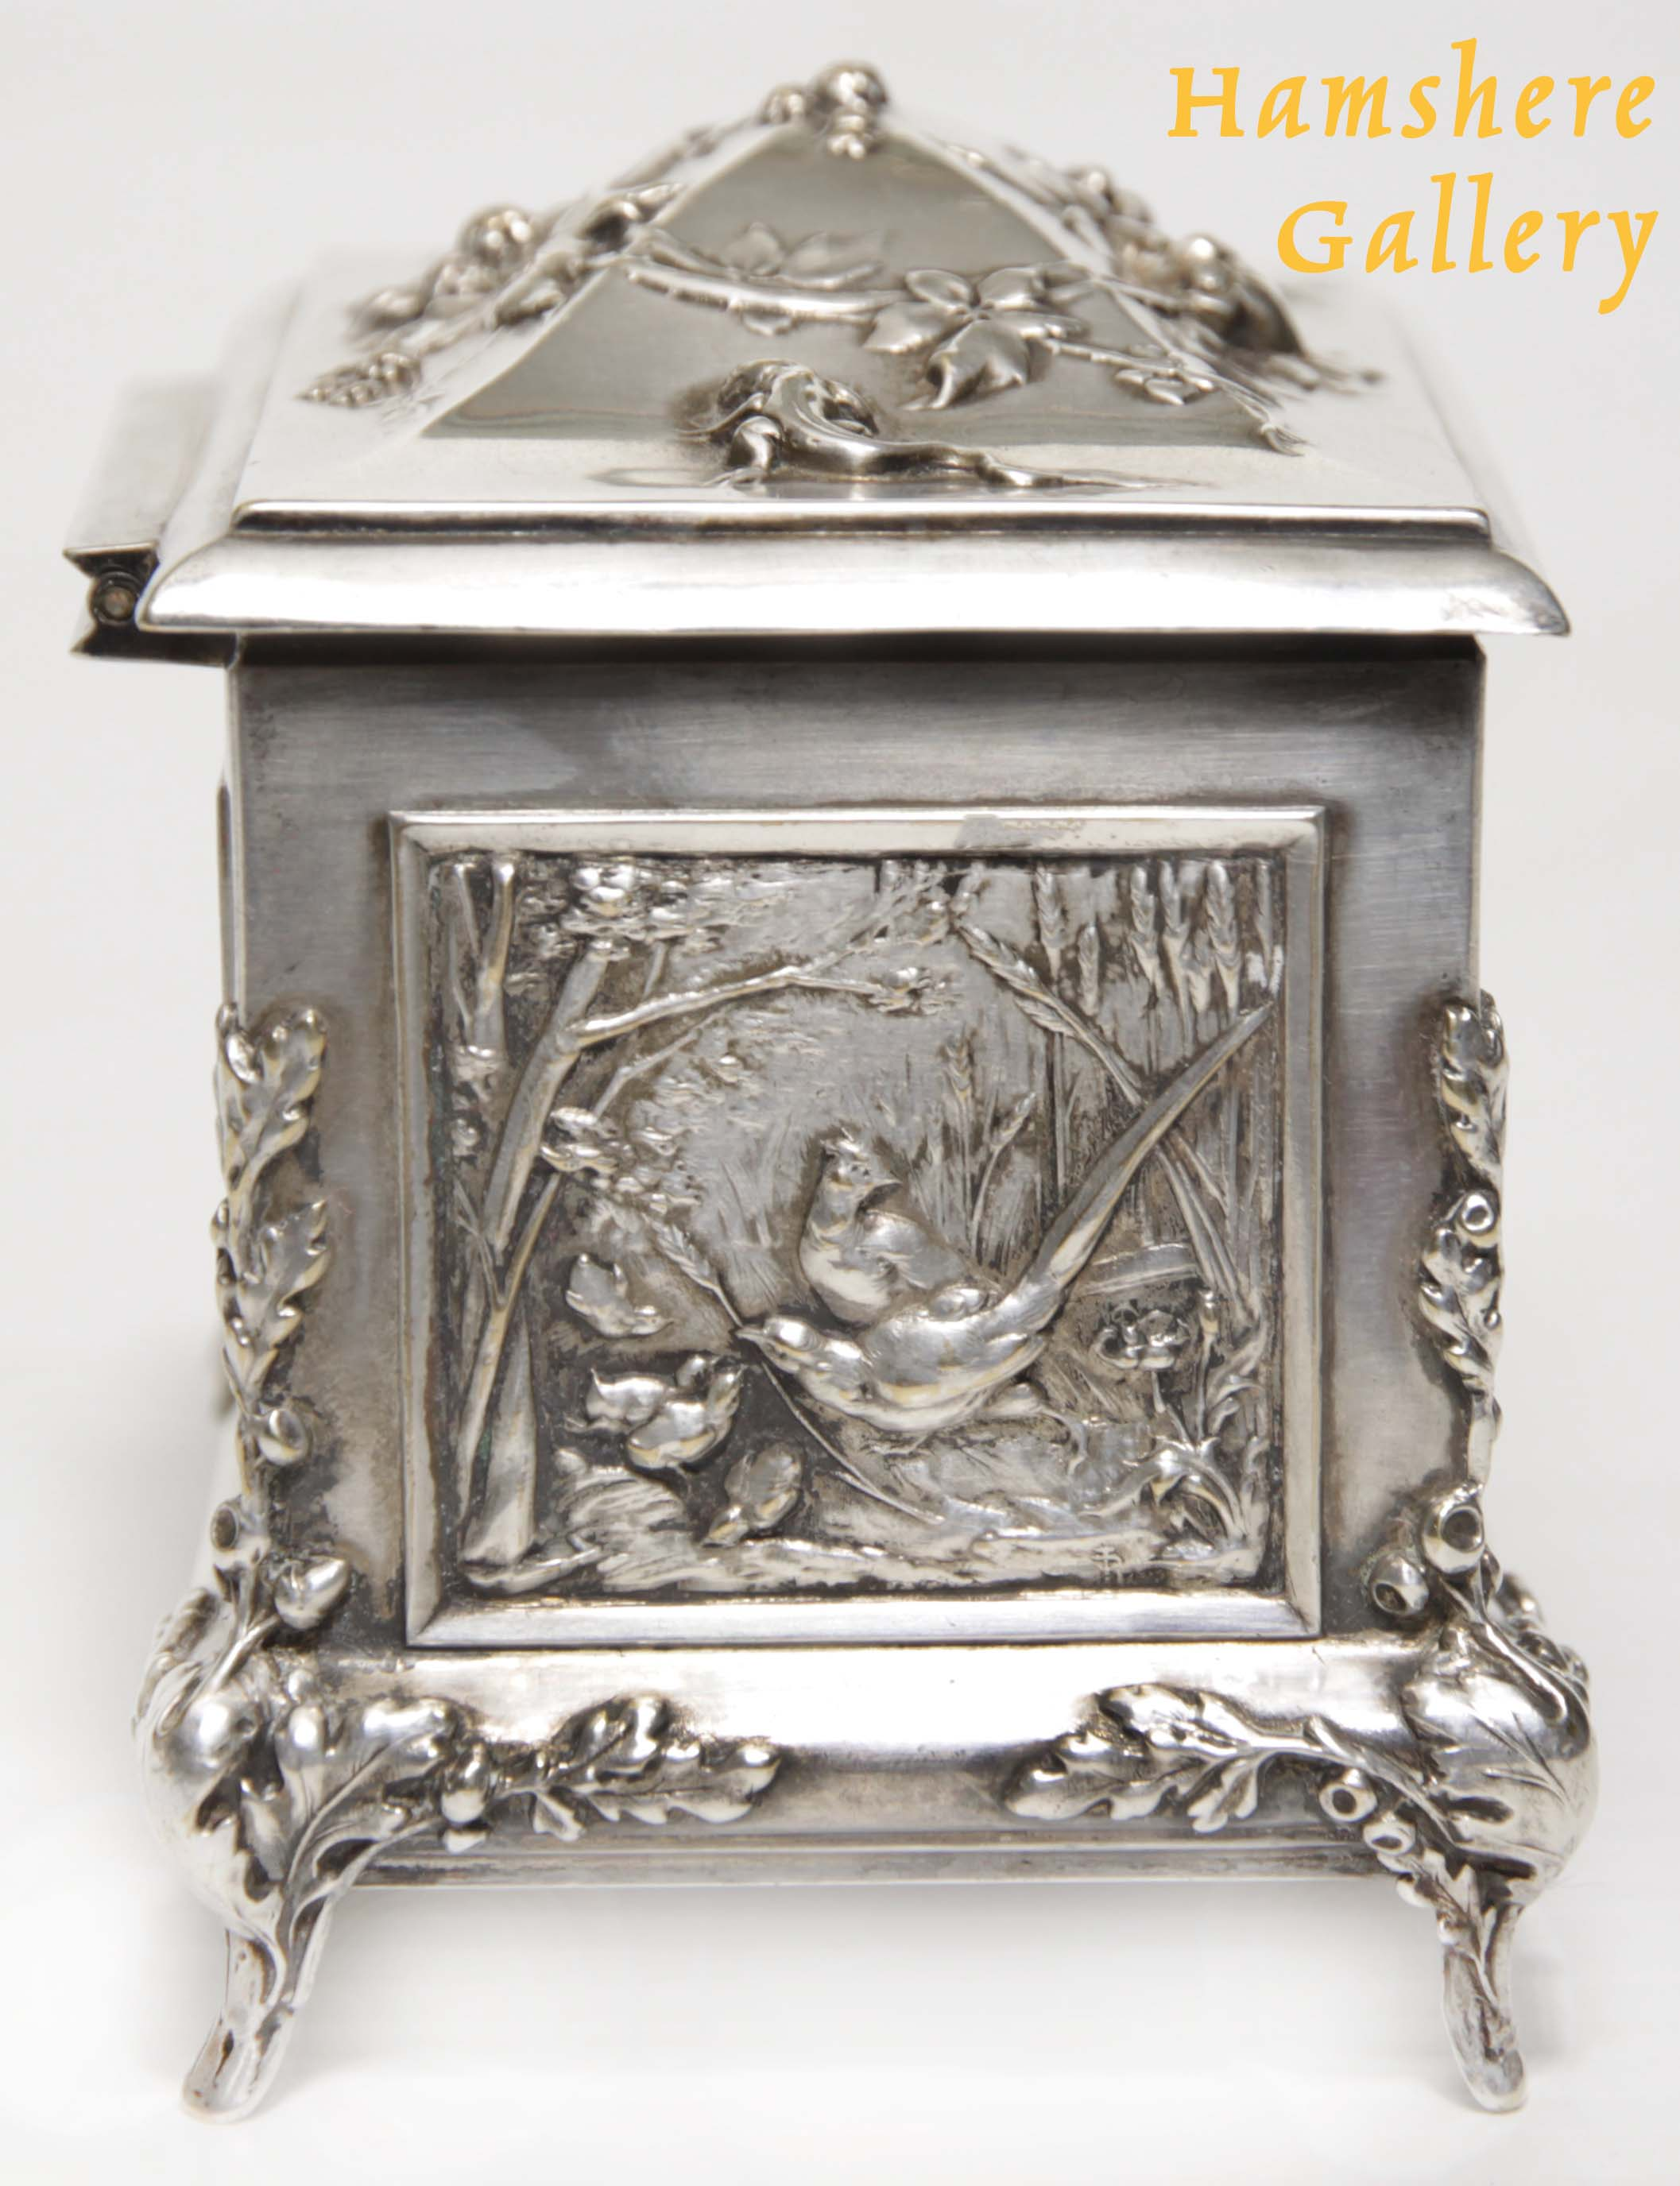 Click for larger image: A silver hunting / La Chasse jewellery box by Louis Armand Rault (French, 1847-1903) - A silver hunting / La Chasse jewellery box by Louis Armand Rault (French, 1847-1903)